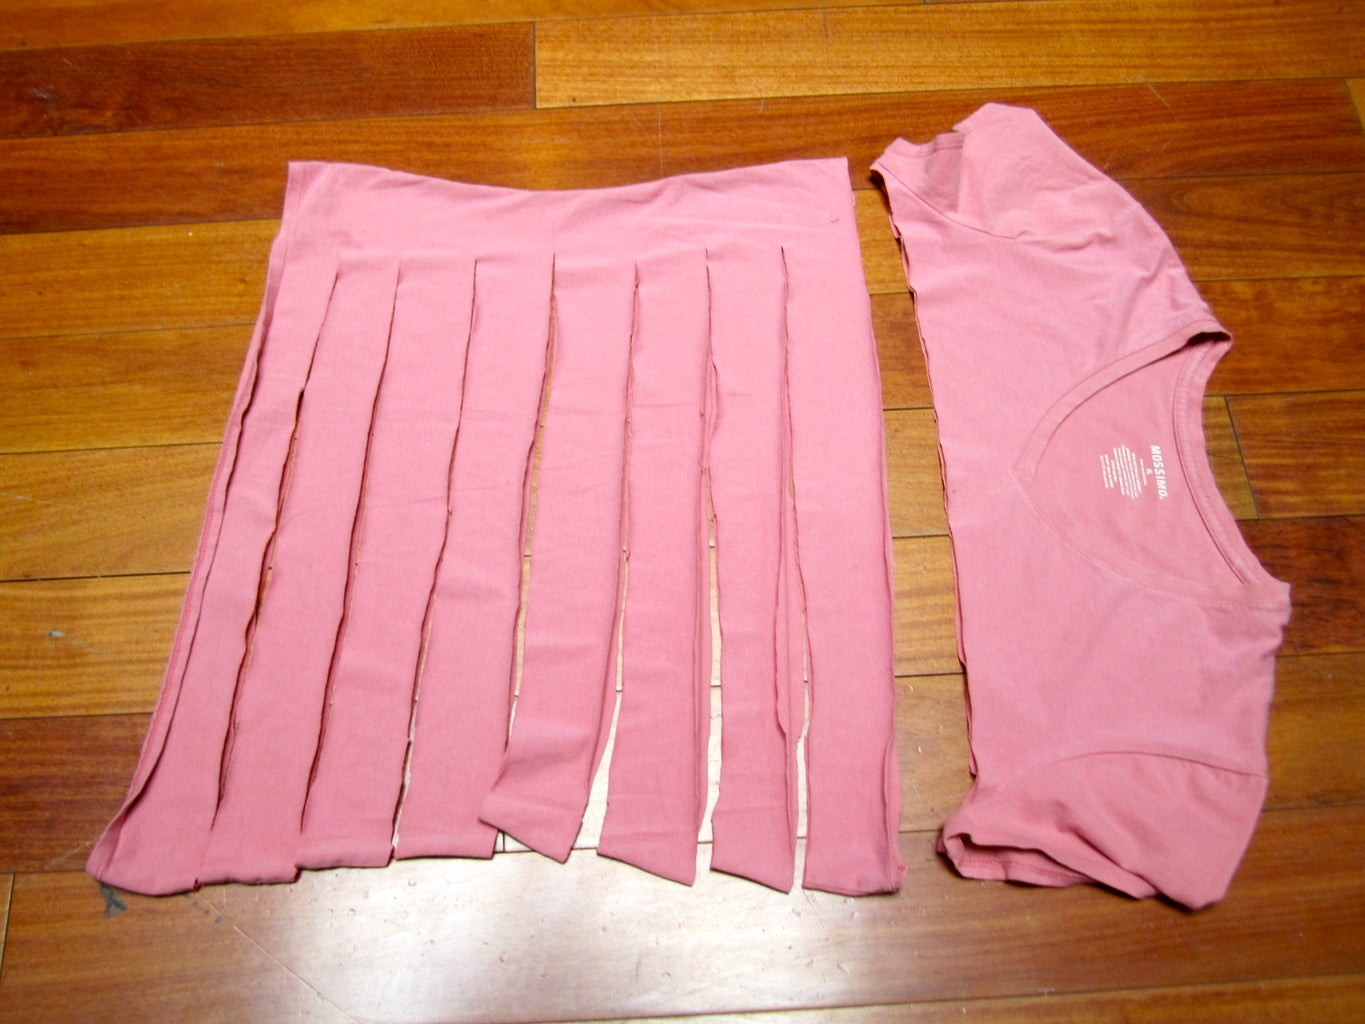 Lay the T-shirt Flat on the Floor and Make the First Cuts